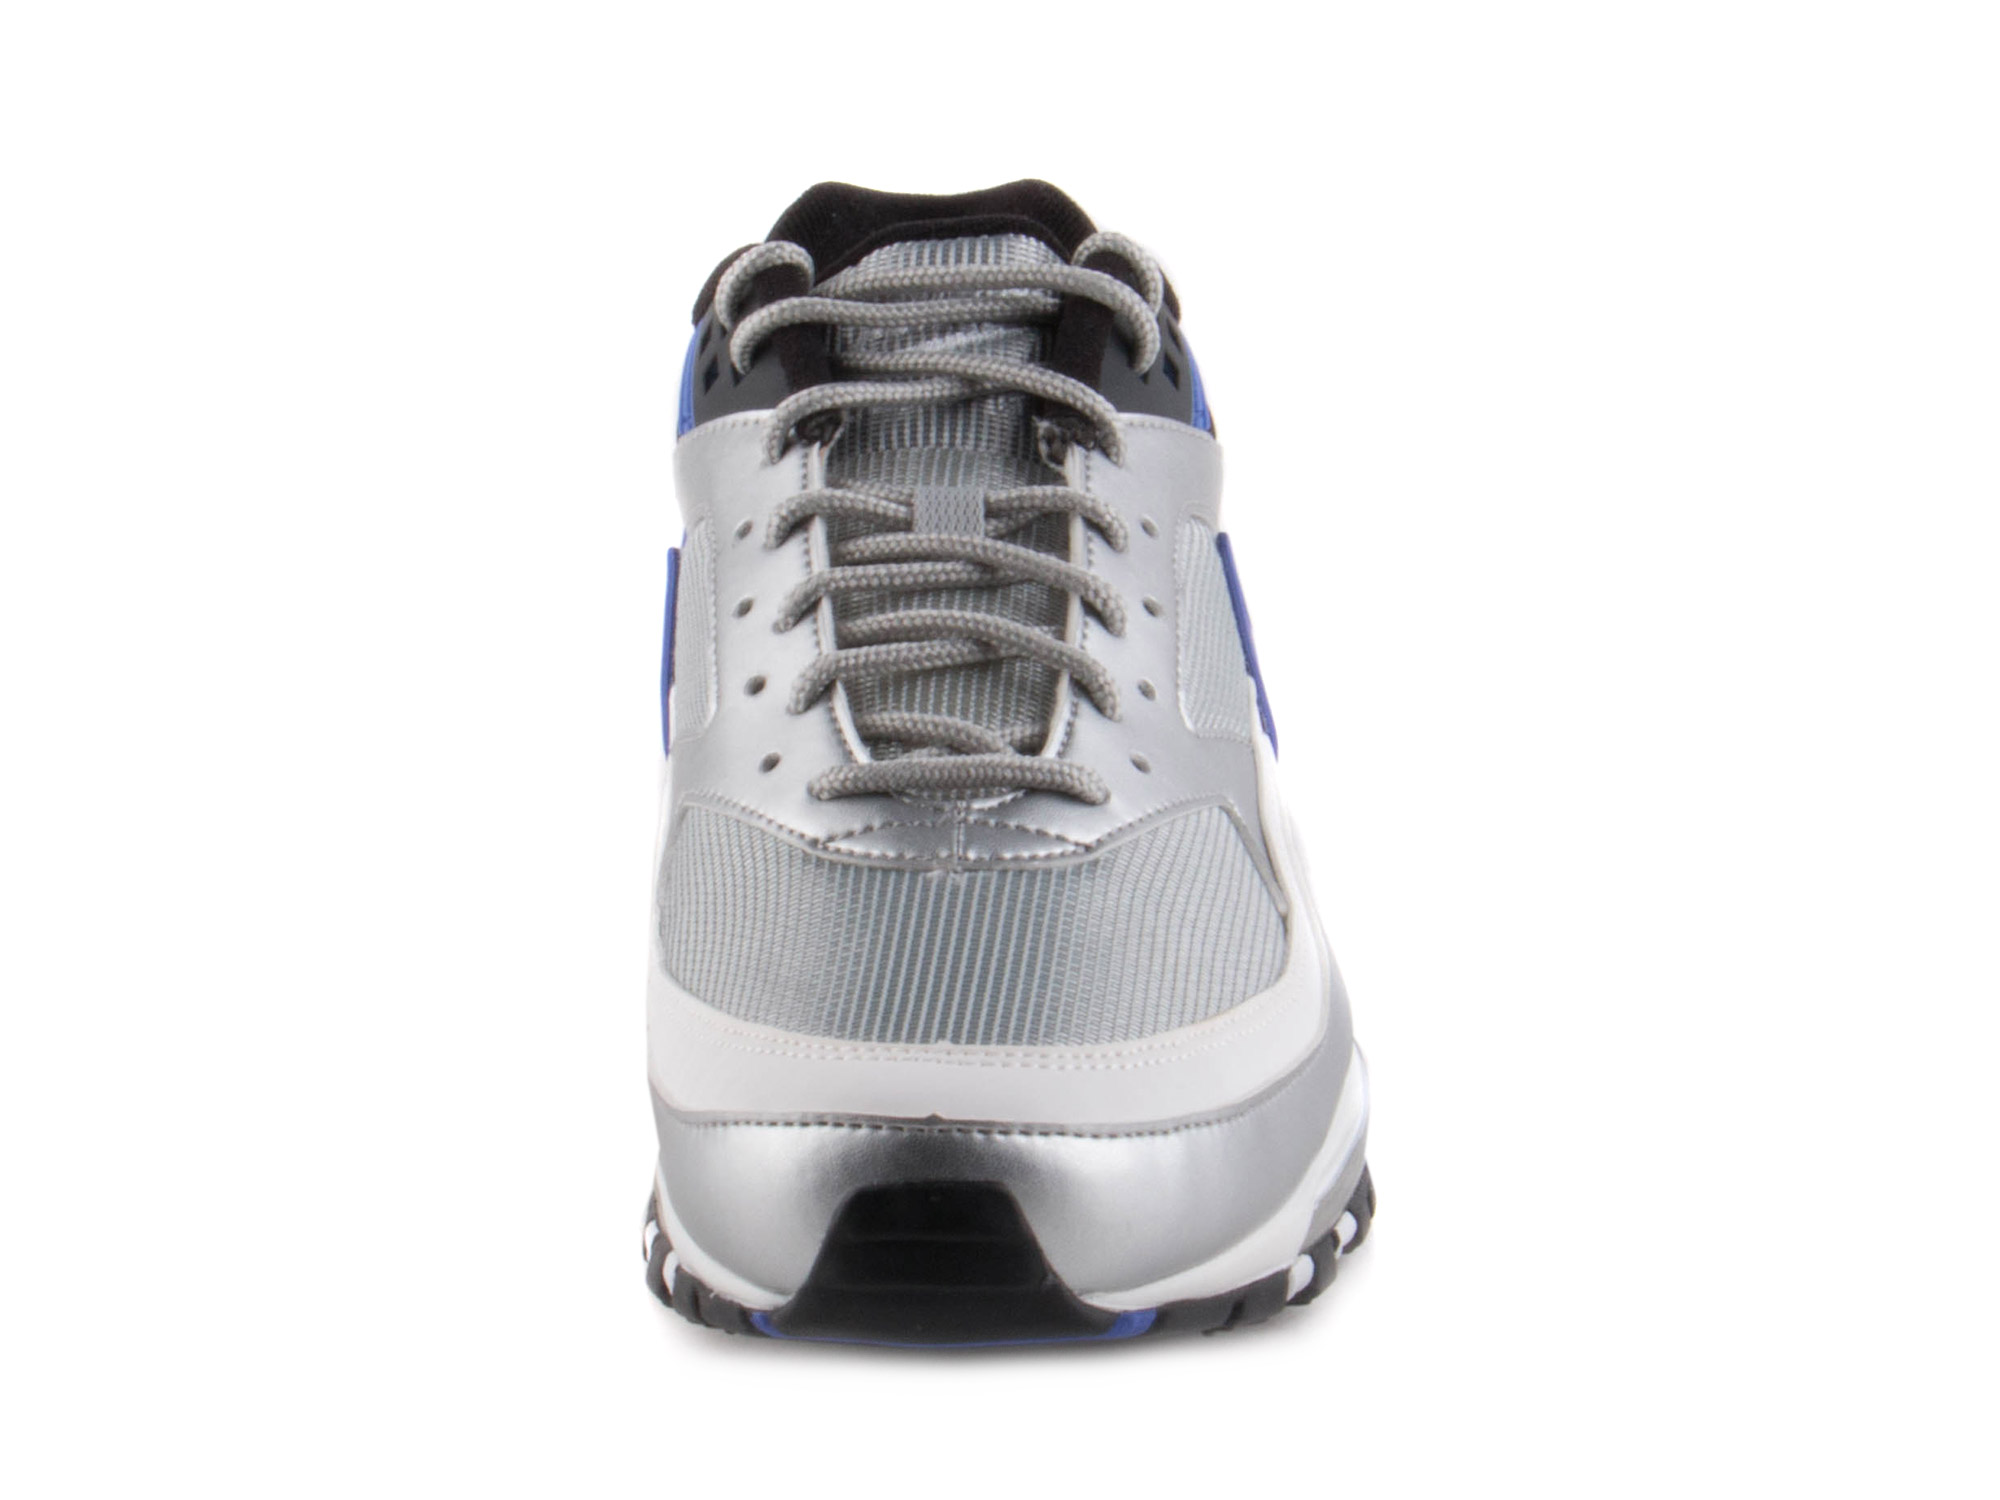 Details about Nike Air Max 97 BW Mens Shoes Metallic Silver Persian Violet AO2406 002 New